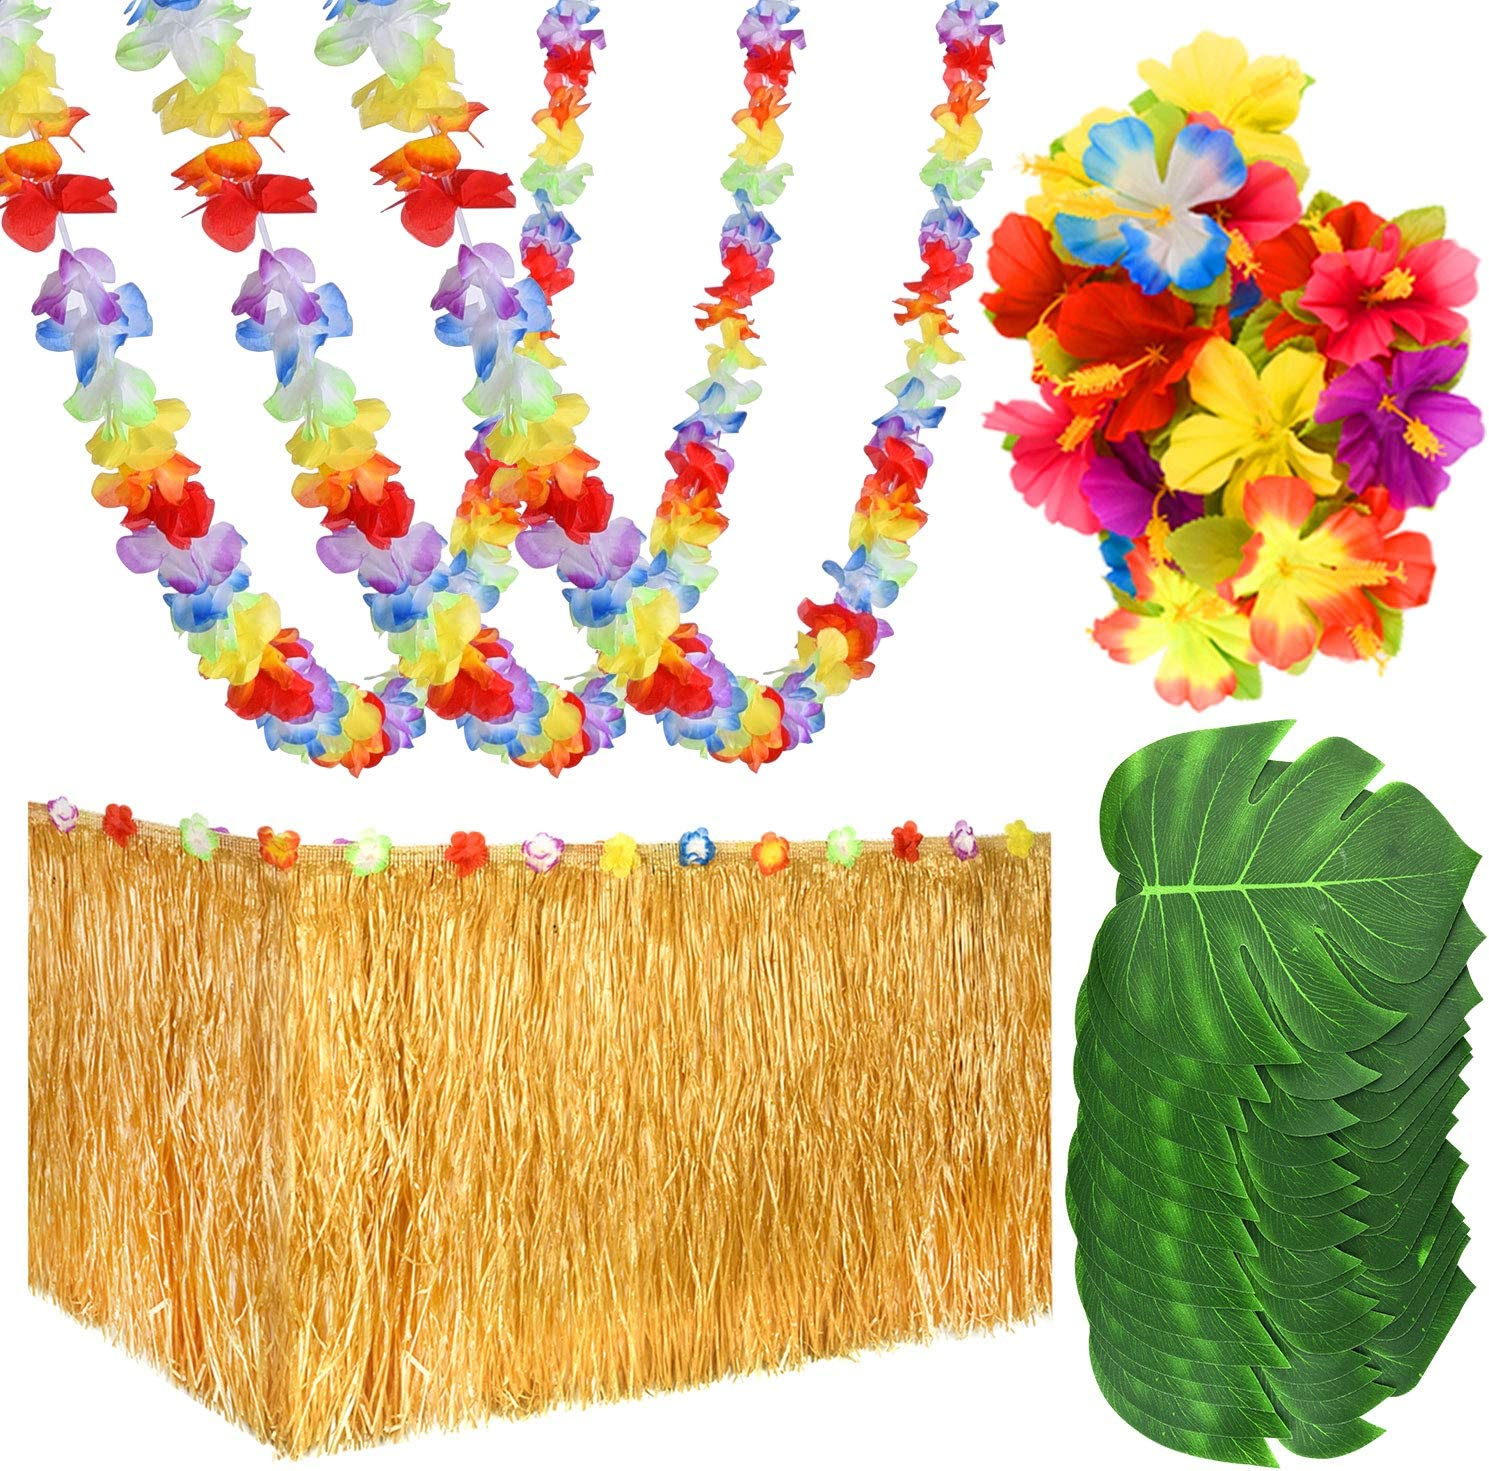 KUUQA 65 PCS Luau Tropical Hawaiian Party Decoration Set Including 9 ft Luau Table Grass Skirt, 4 Pack Hawaiian Flower Lei Garland, 30 Hibiscus Flowers and 30 Artificial Tropical Leaves